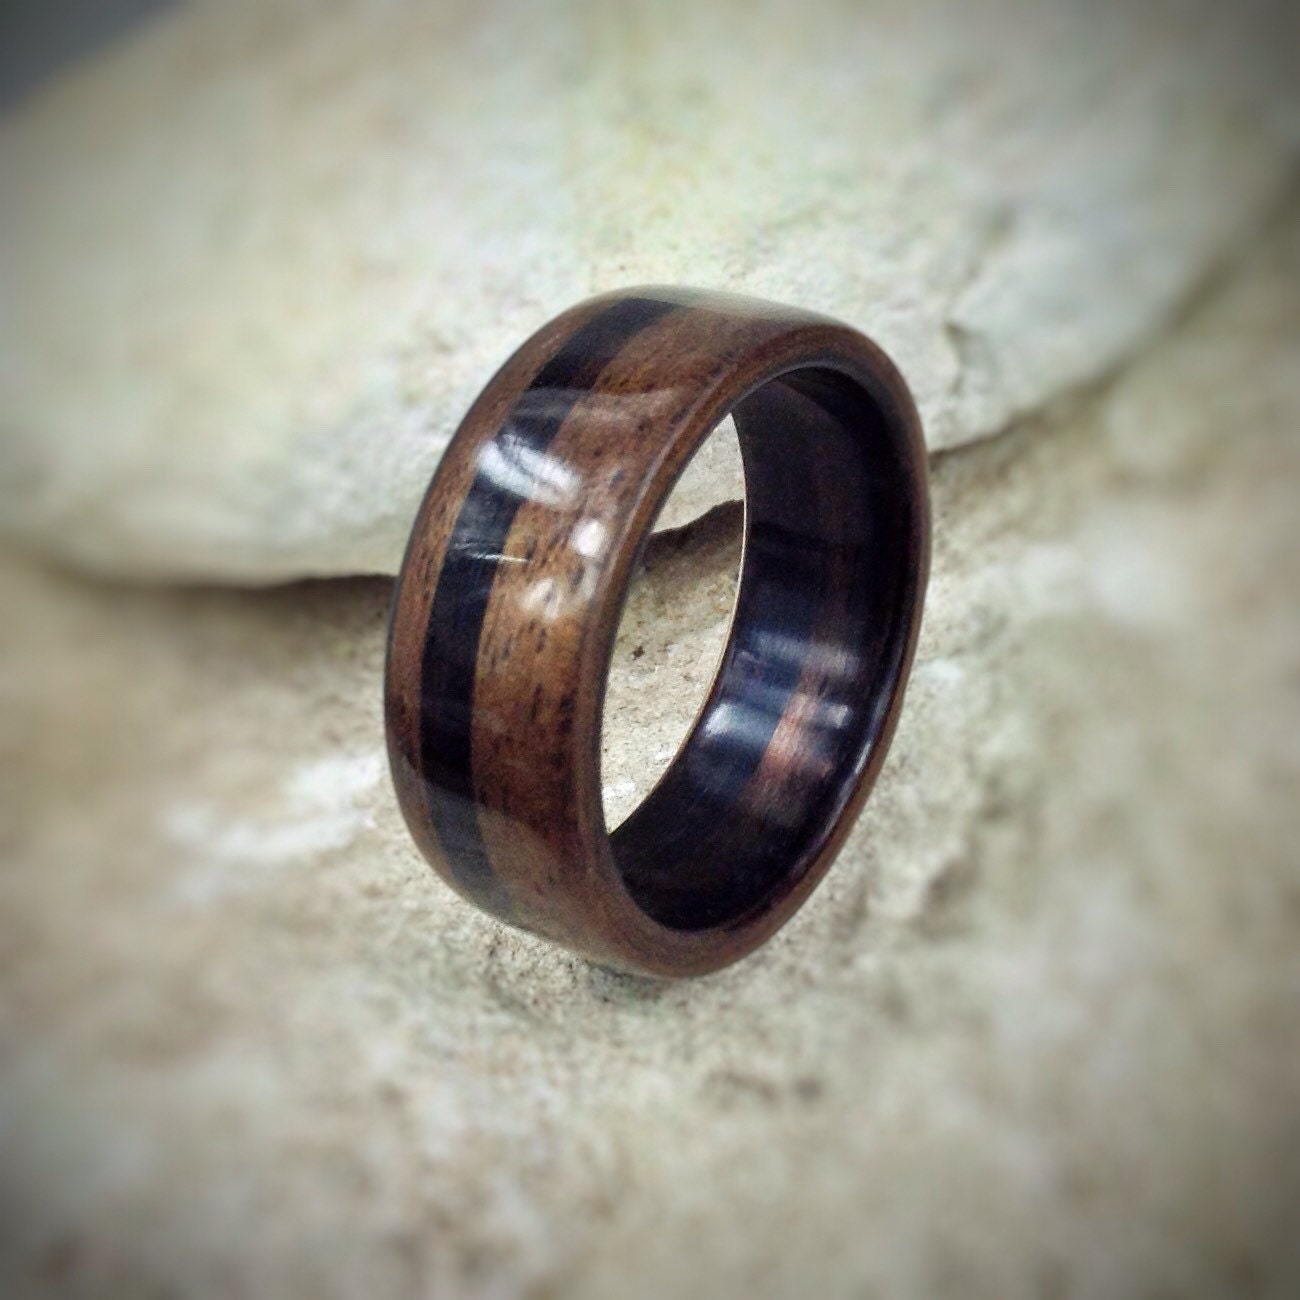 bentwood ring classic wedding lined designs rings galleries heartwood